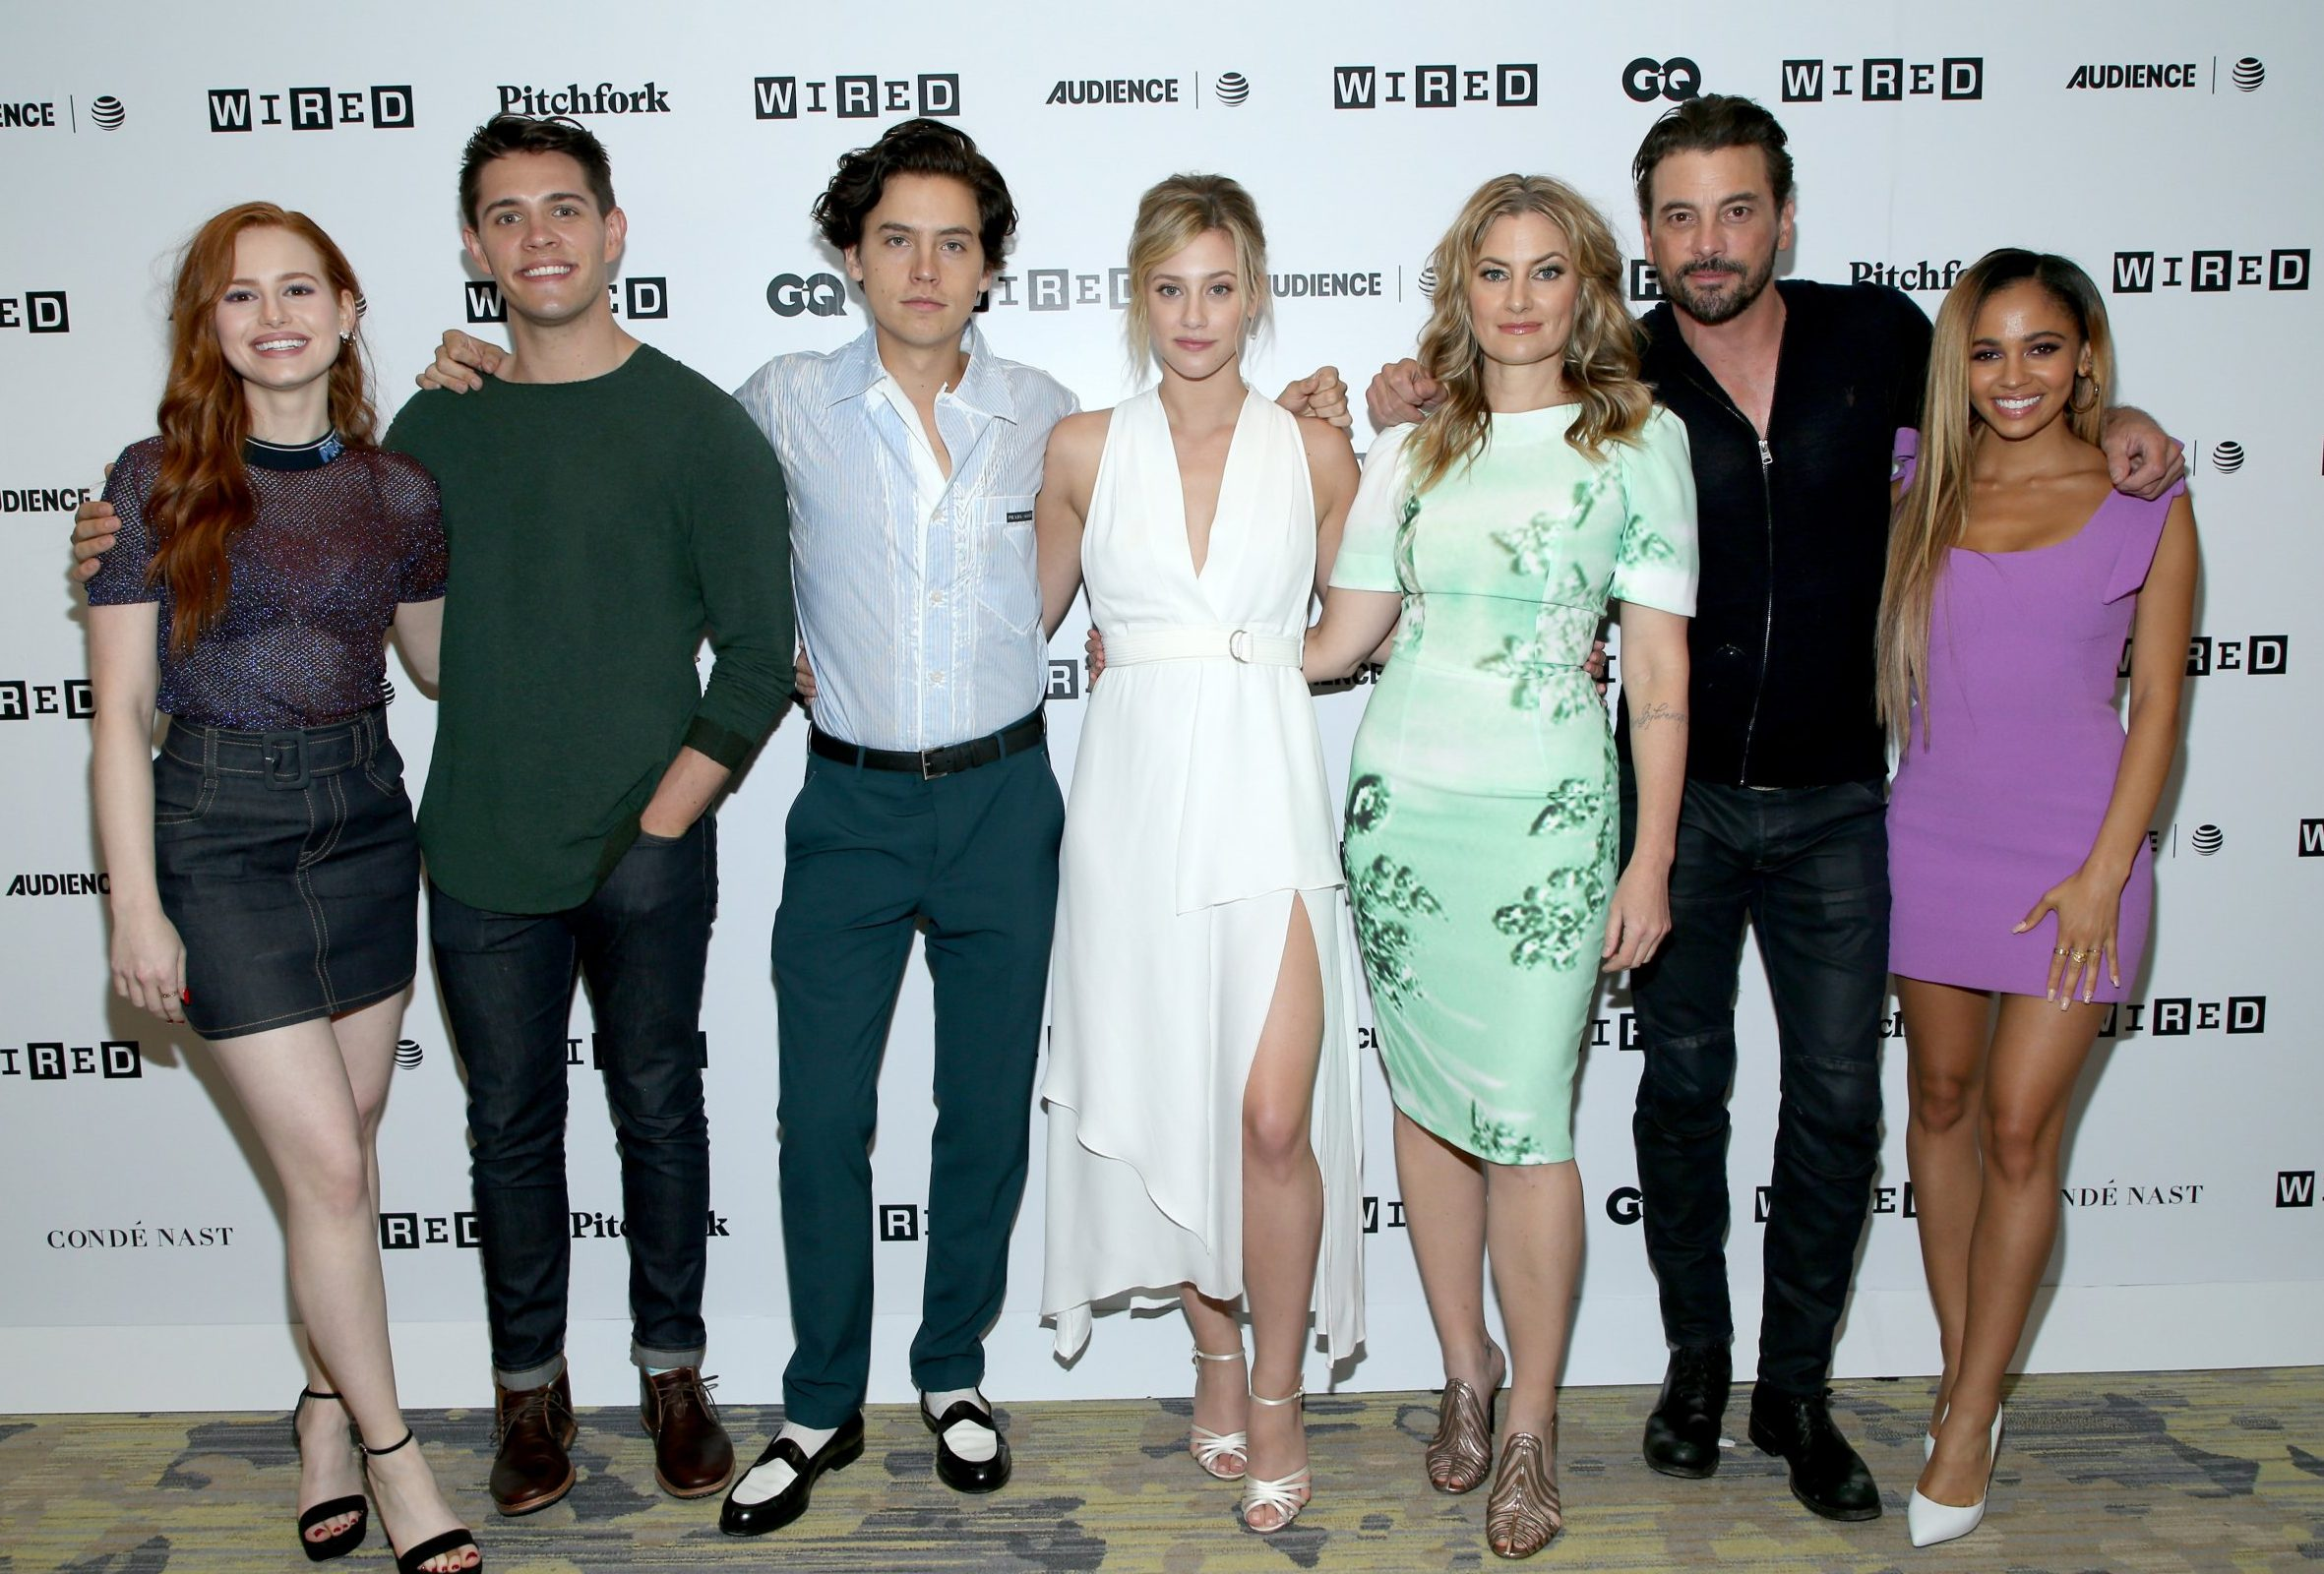 SAN DIEGO, CA - JULY 21: (L-R) Madelaine Petsch, Casey Cott, Cole Sprouse, Lili Reinhart, Madchen Amick, Skeet Ulrich, and Vanessa Morgan of 'Riverdale' attends the 2018 WIRED Cafe at Comic Con presented by AT&T Audience Network at Omni Hotel on July 21, 2018 in San Diego, California. (Photo by Phillip Faraone/Getty Images for WIRED)